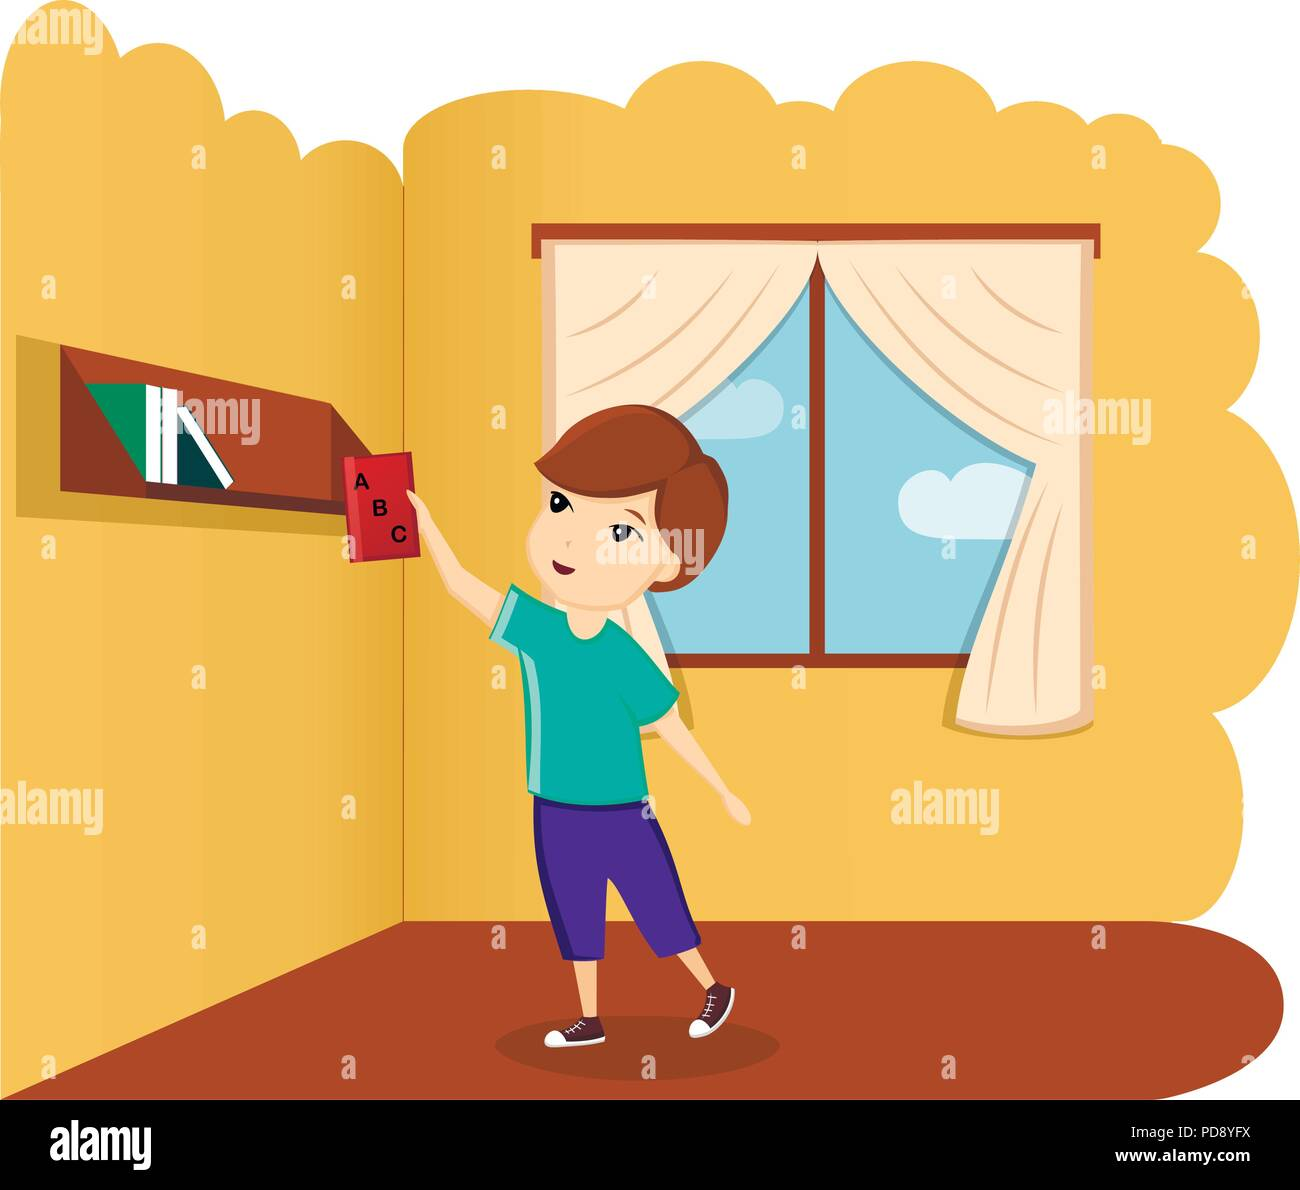 Boy with book in room, illustration, vector. A child with a book. First day of school, back to school - Stock Image